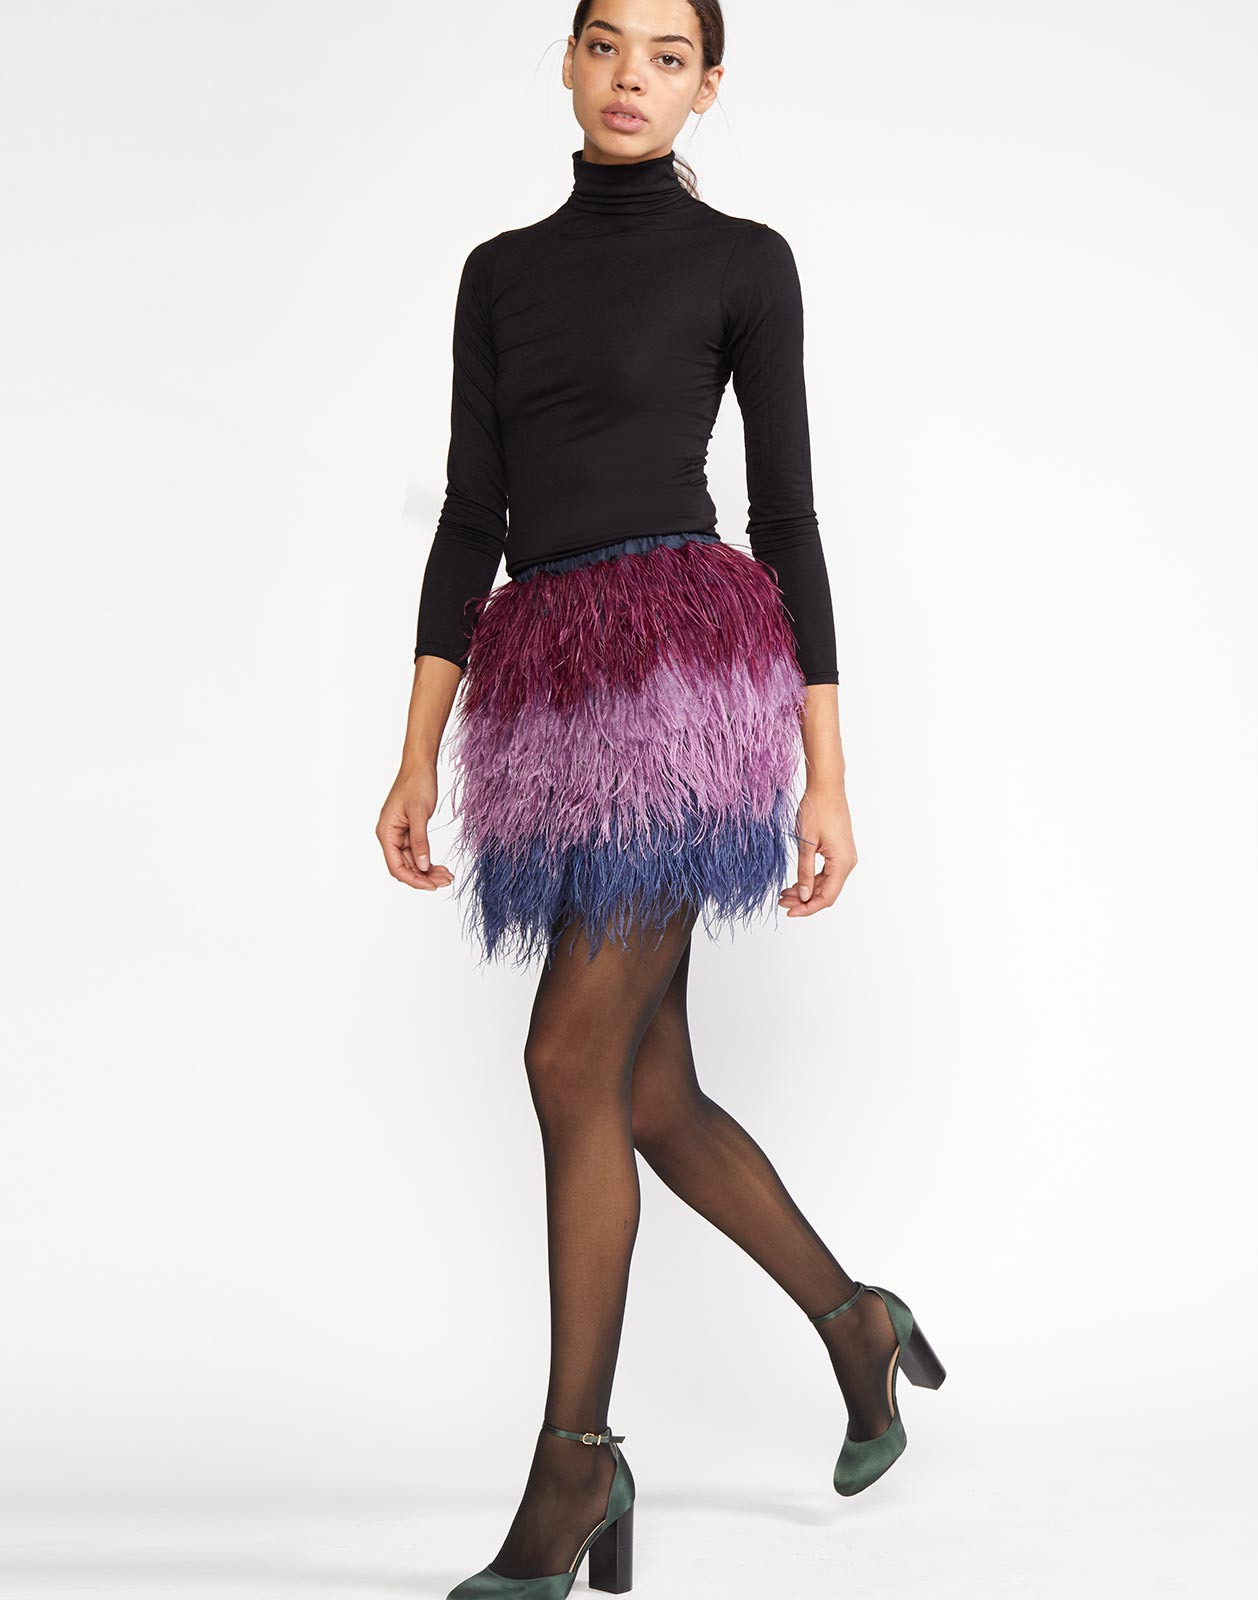 Full view of Vera Ostrich Feather Mini Skirt